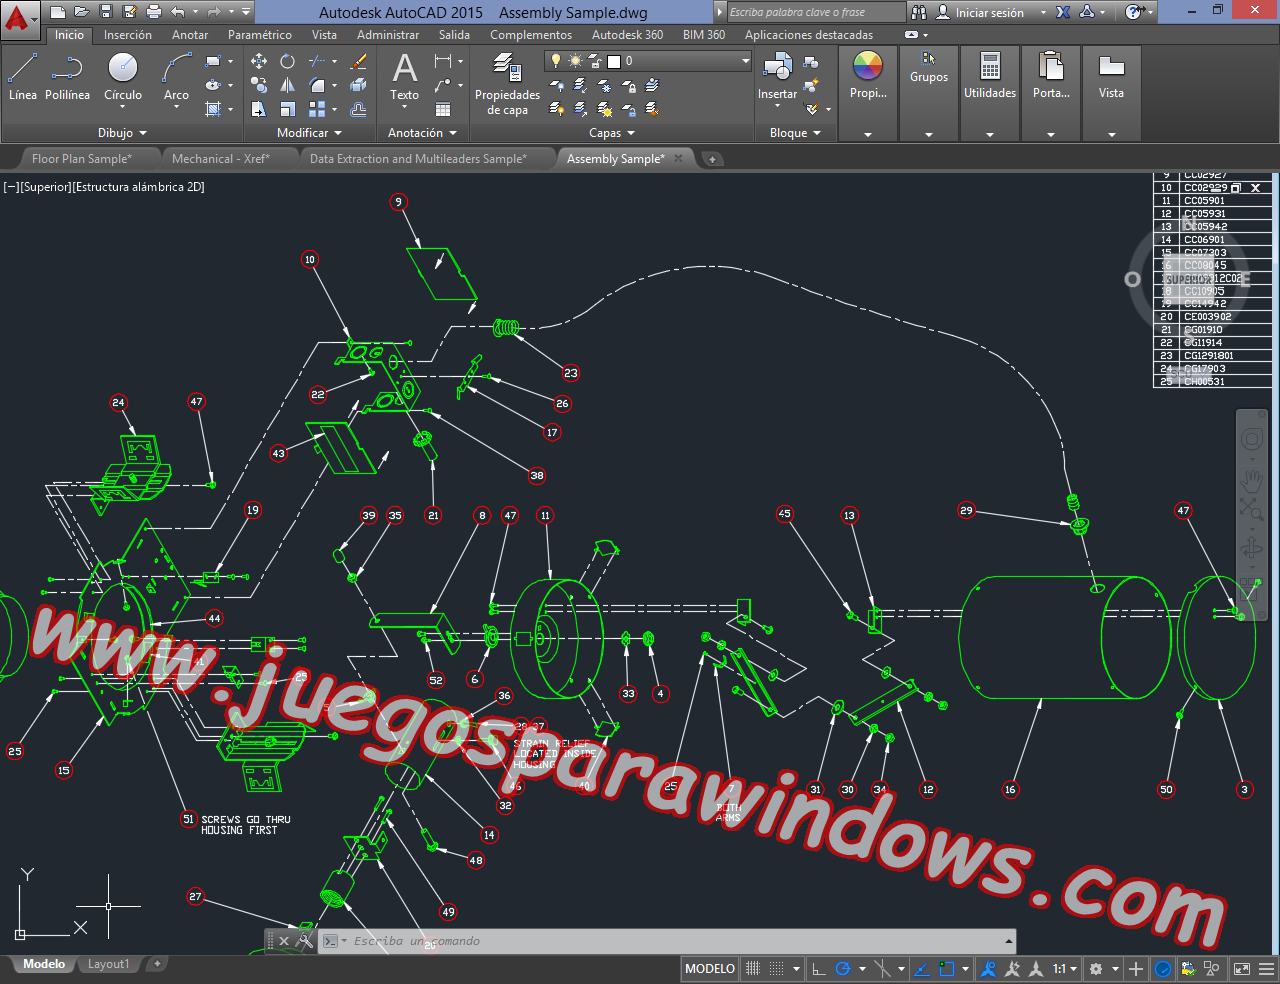 AutoCAD 2015 Full PC ESPAÑOL INGLES 32 y 64 Bits (XFORCE) 14